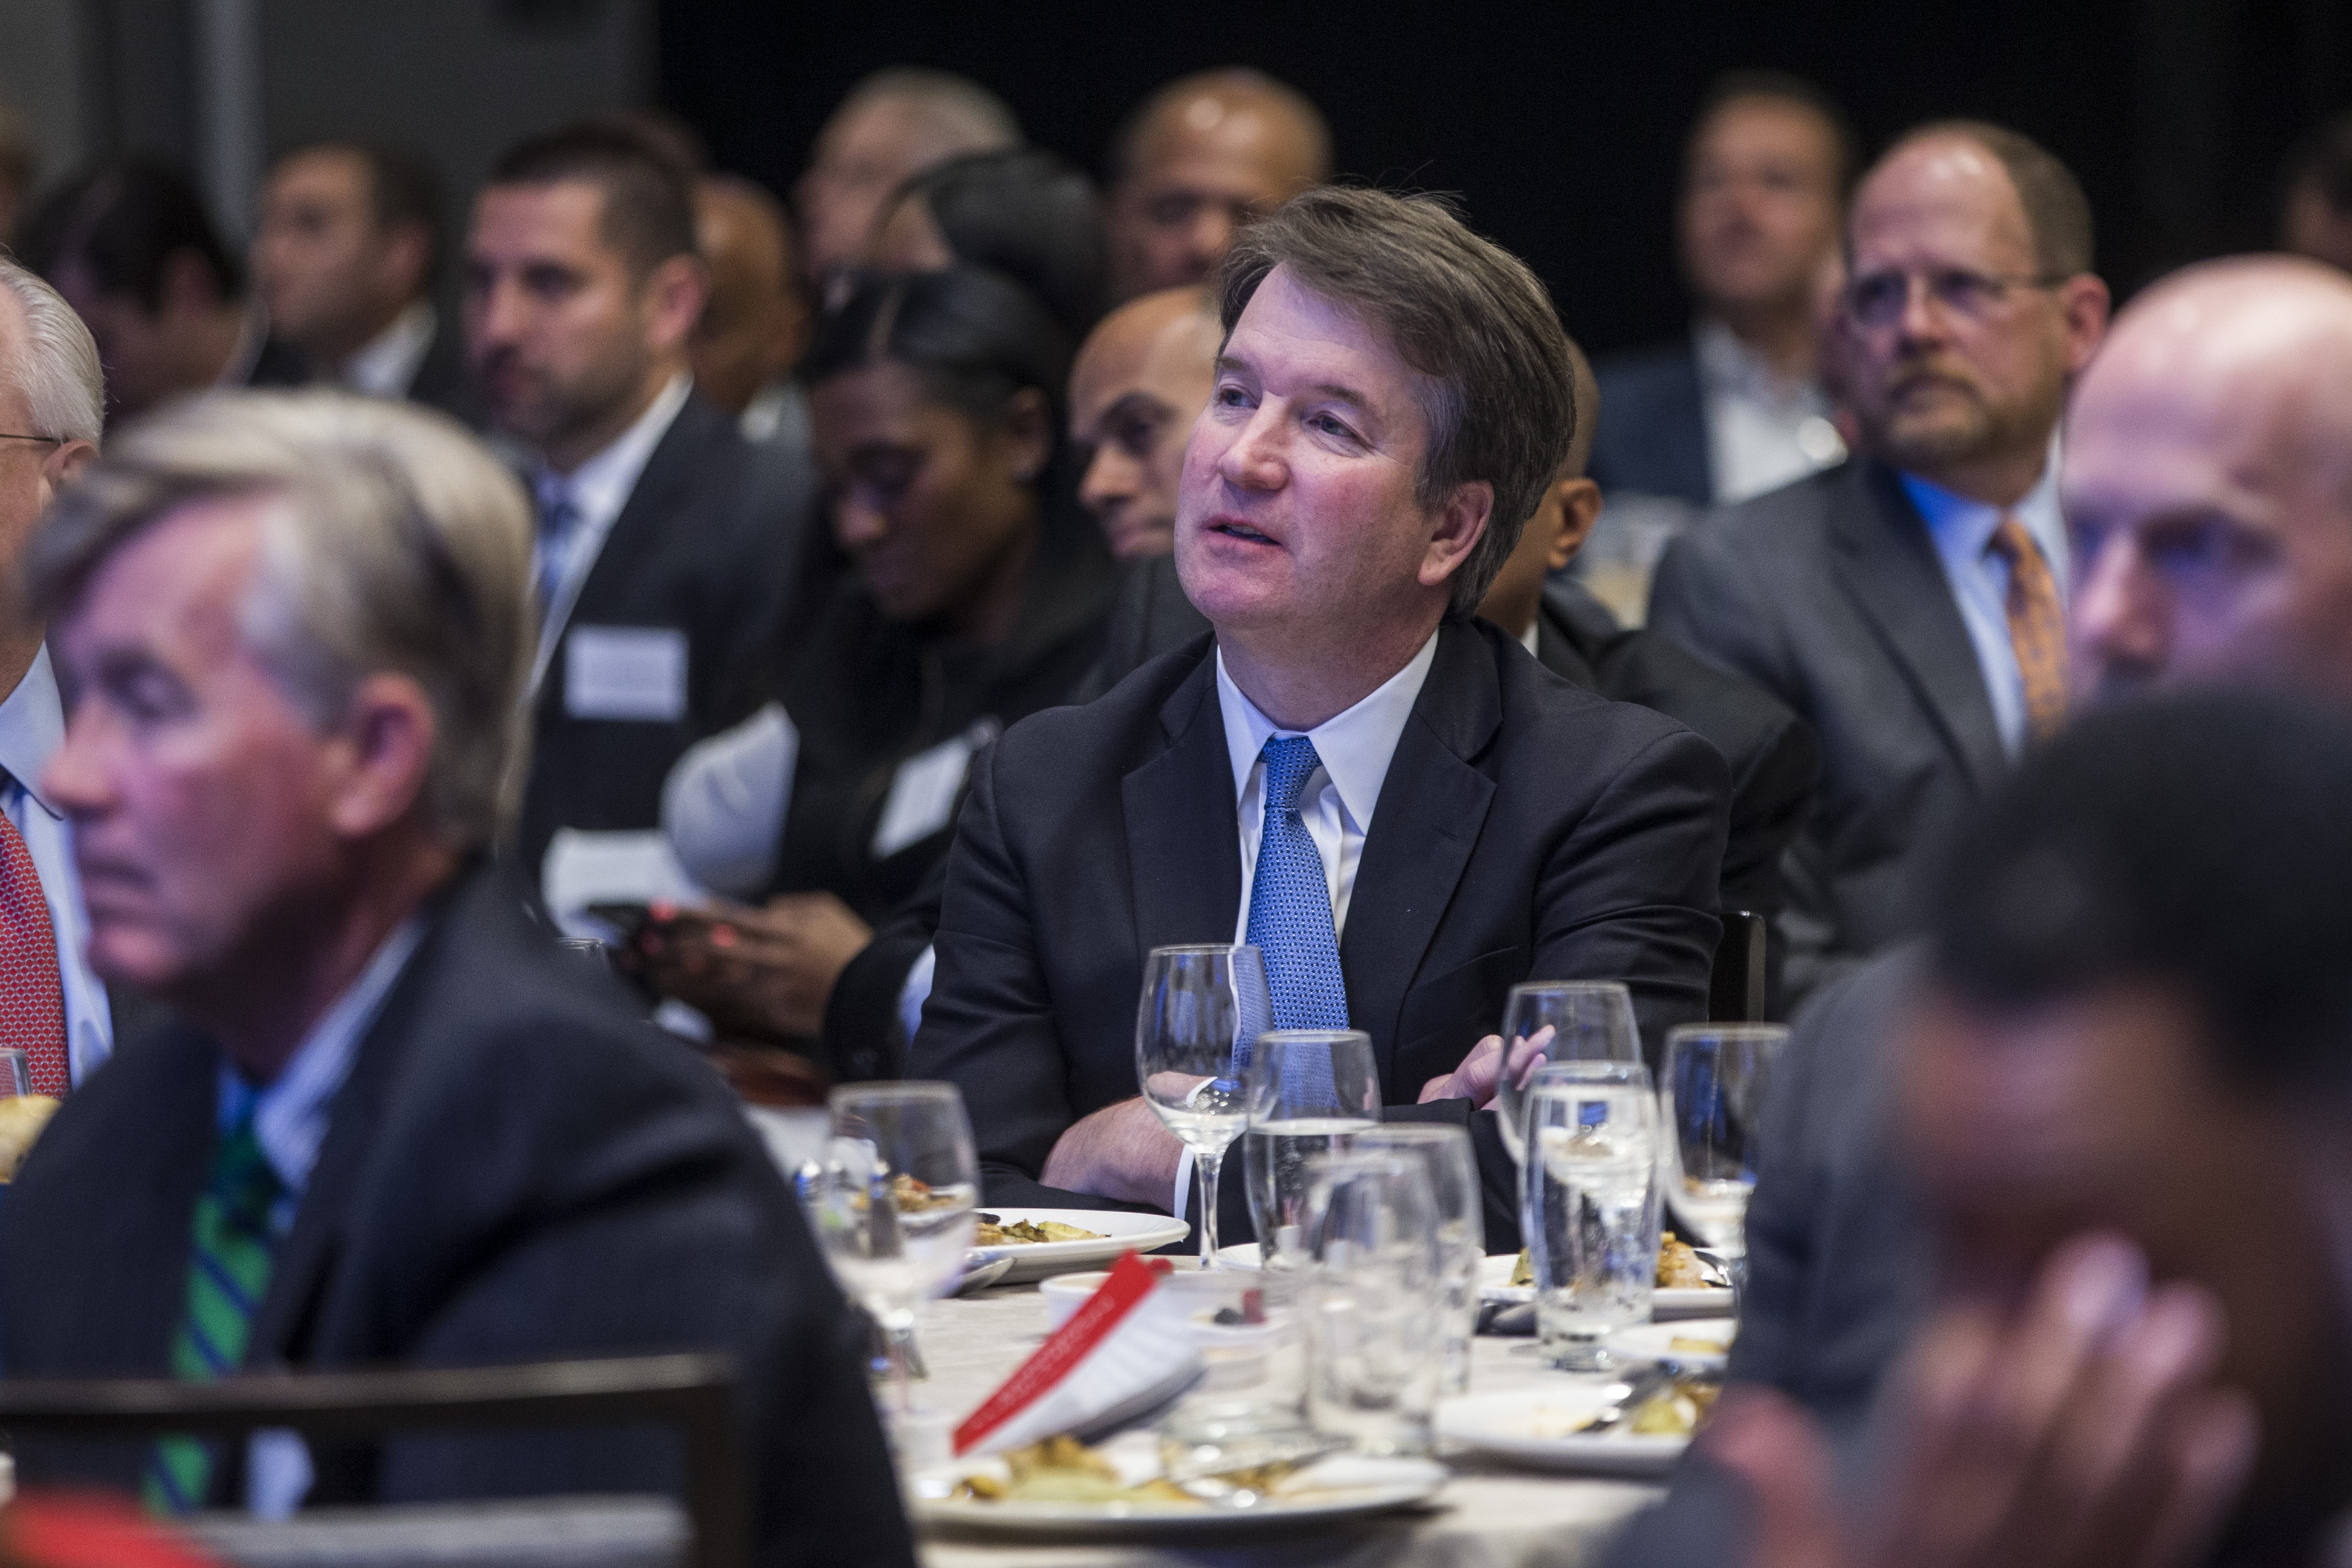 Justice Brett Kavanaugh at the Economic Club of Washington, D.C. on May 9, 2019. (Zach Gibson/Getty Images)